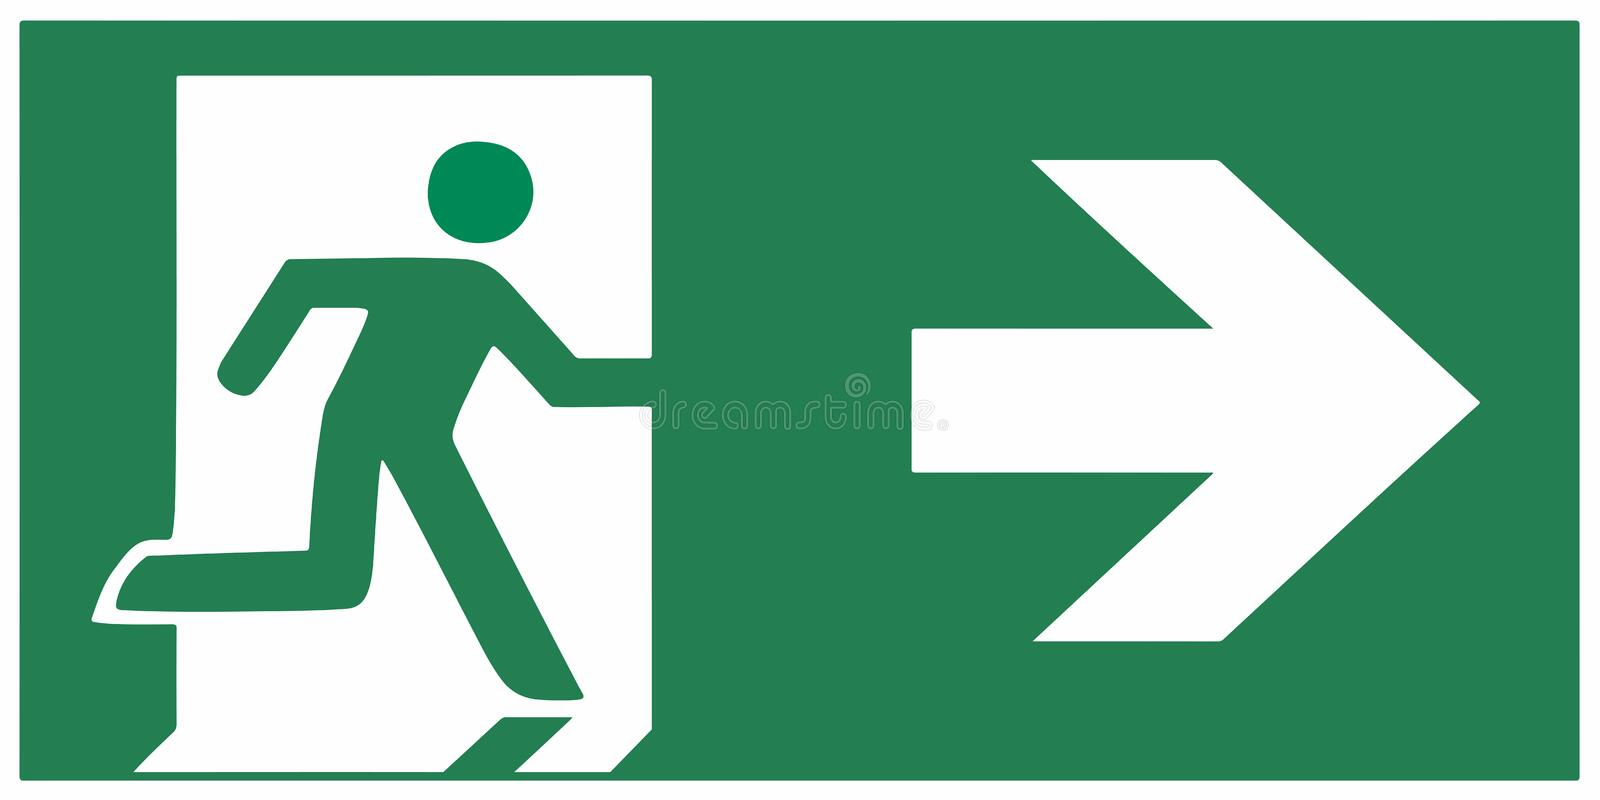 Emergency exit sign right - emergeny exit vector illustration vector illustration